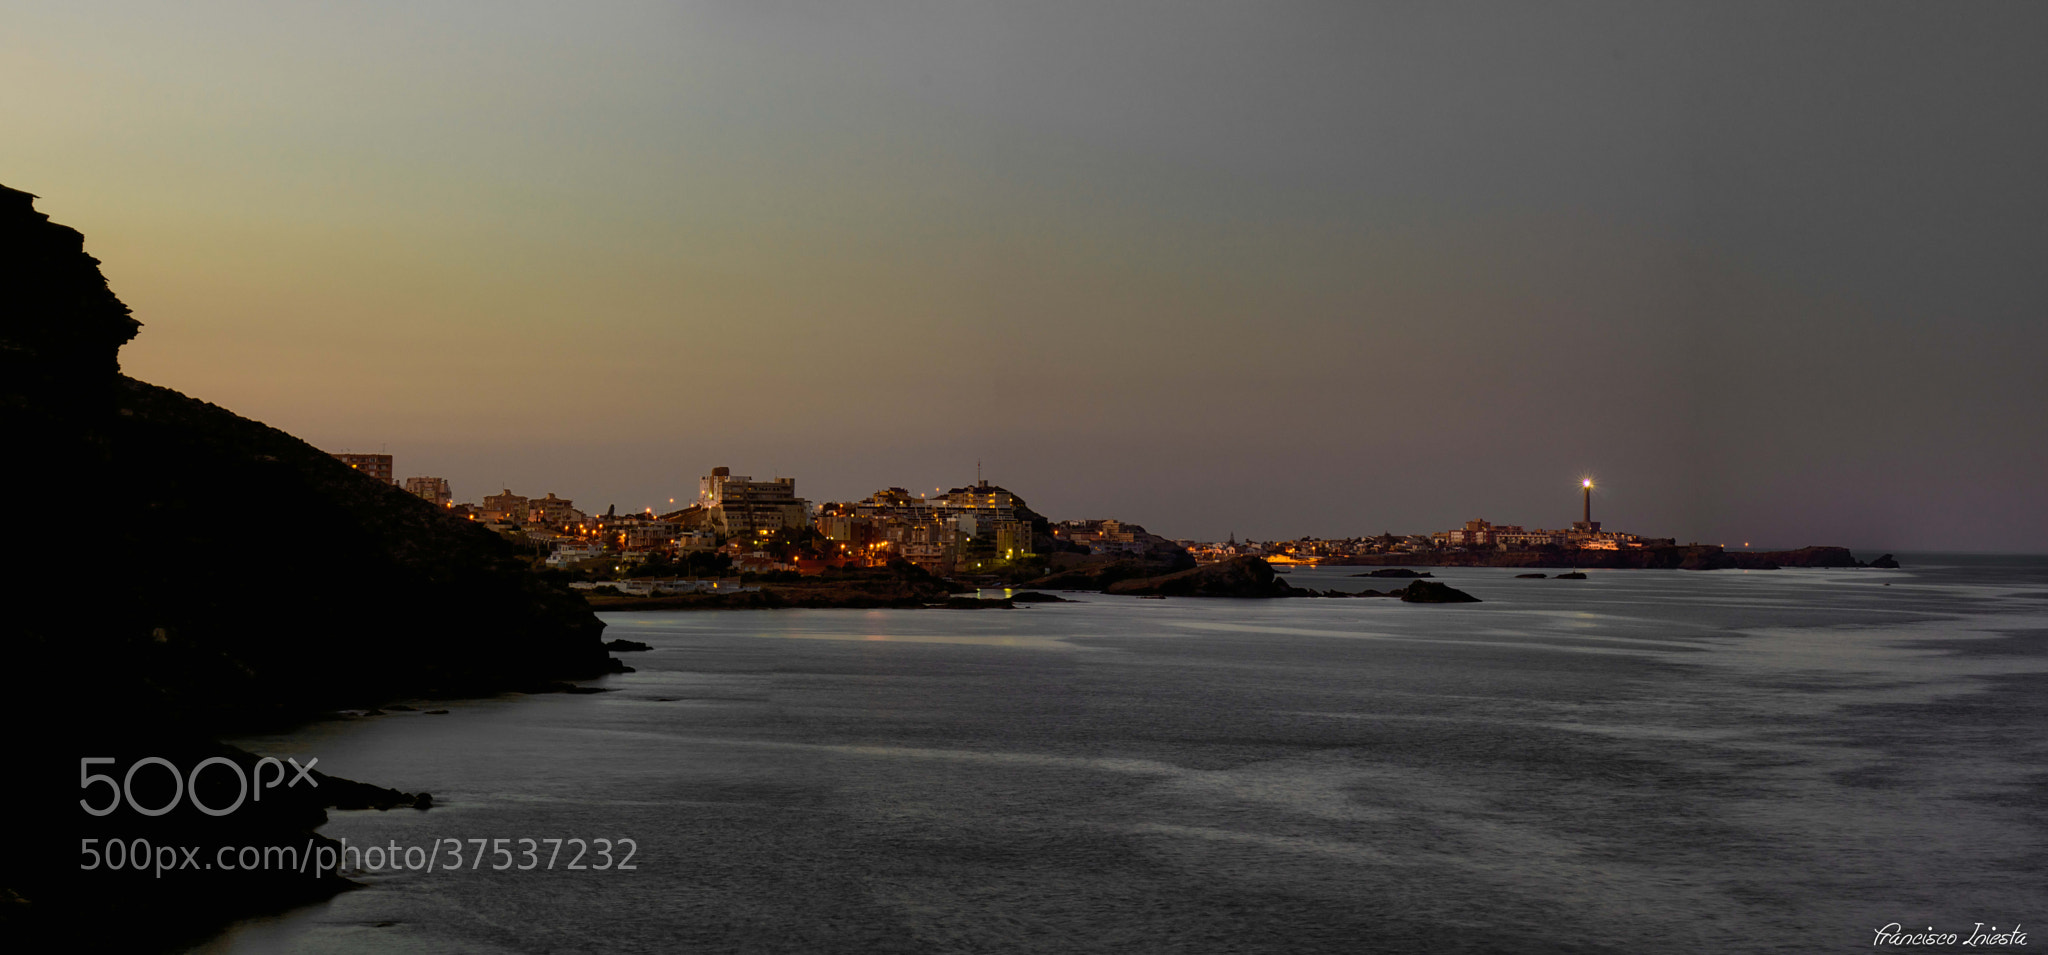 Photograph cabo de Palos by Francisco Iniesta on 500px